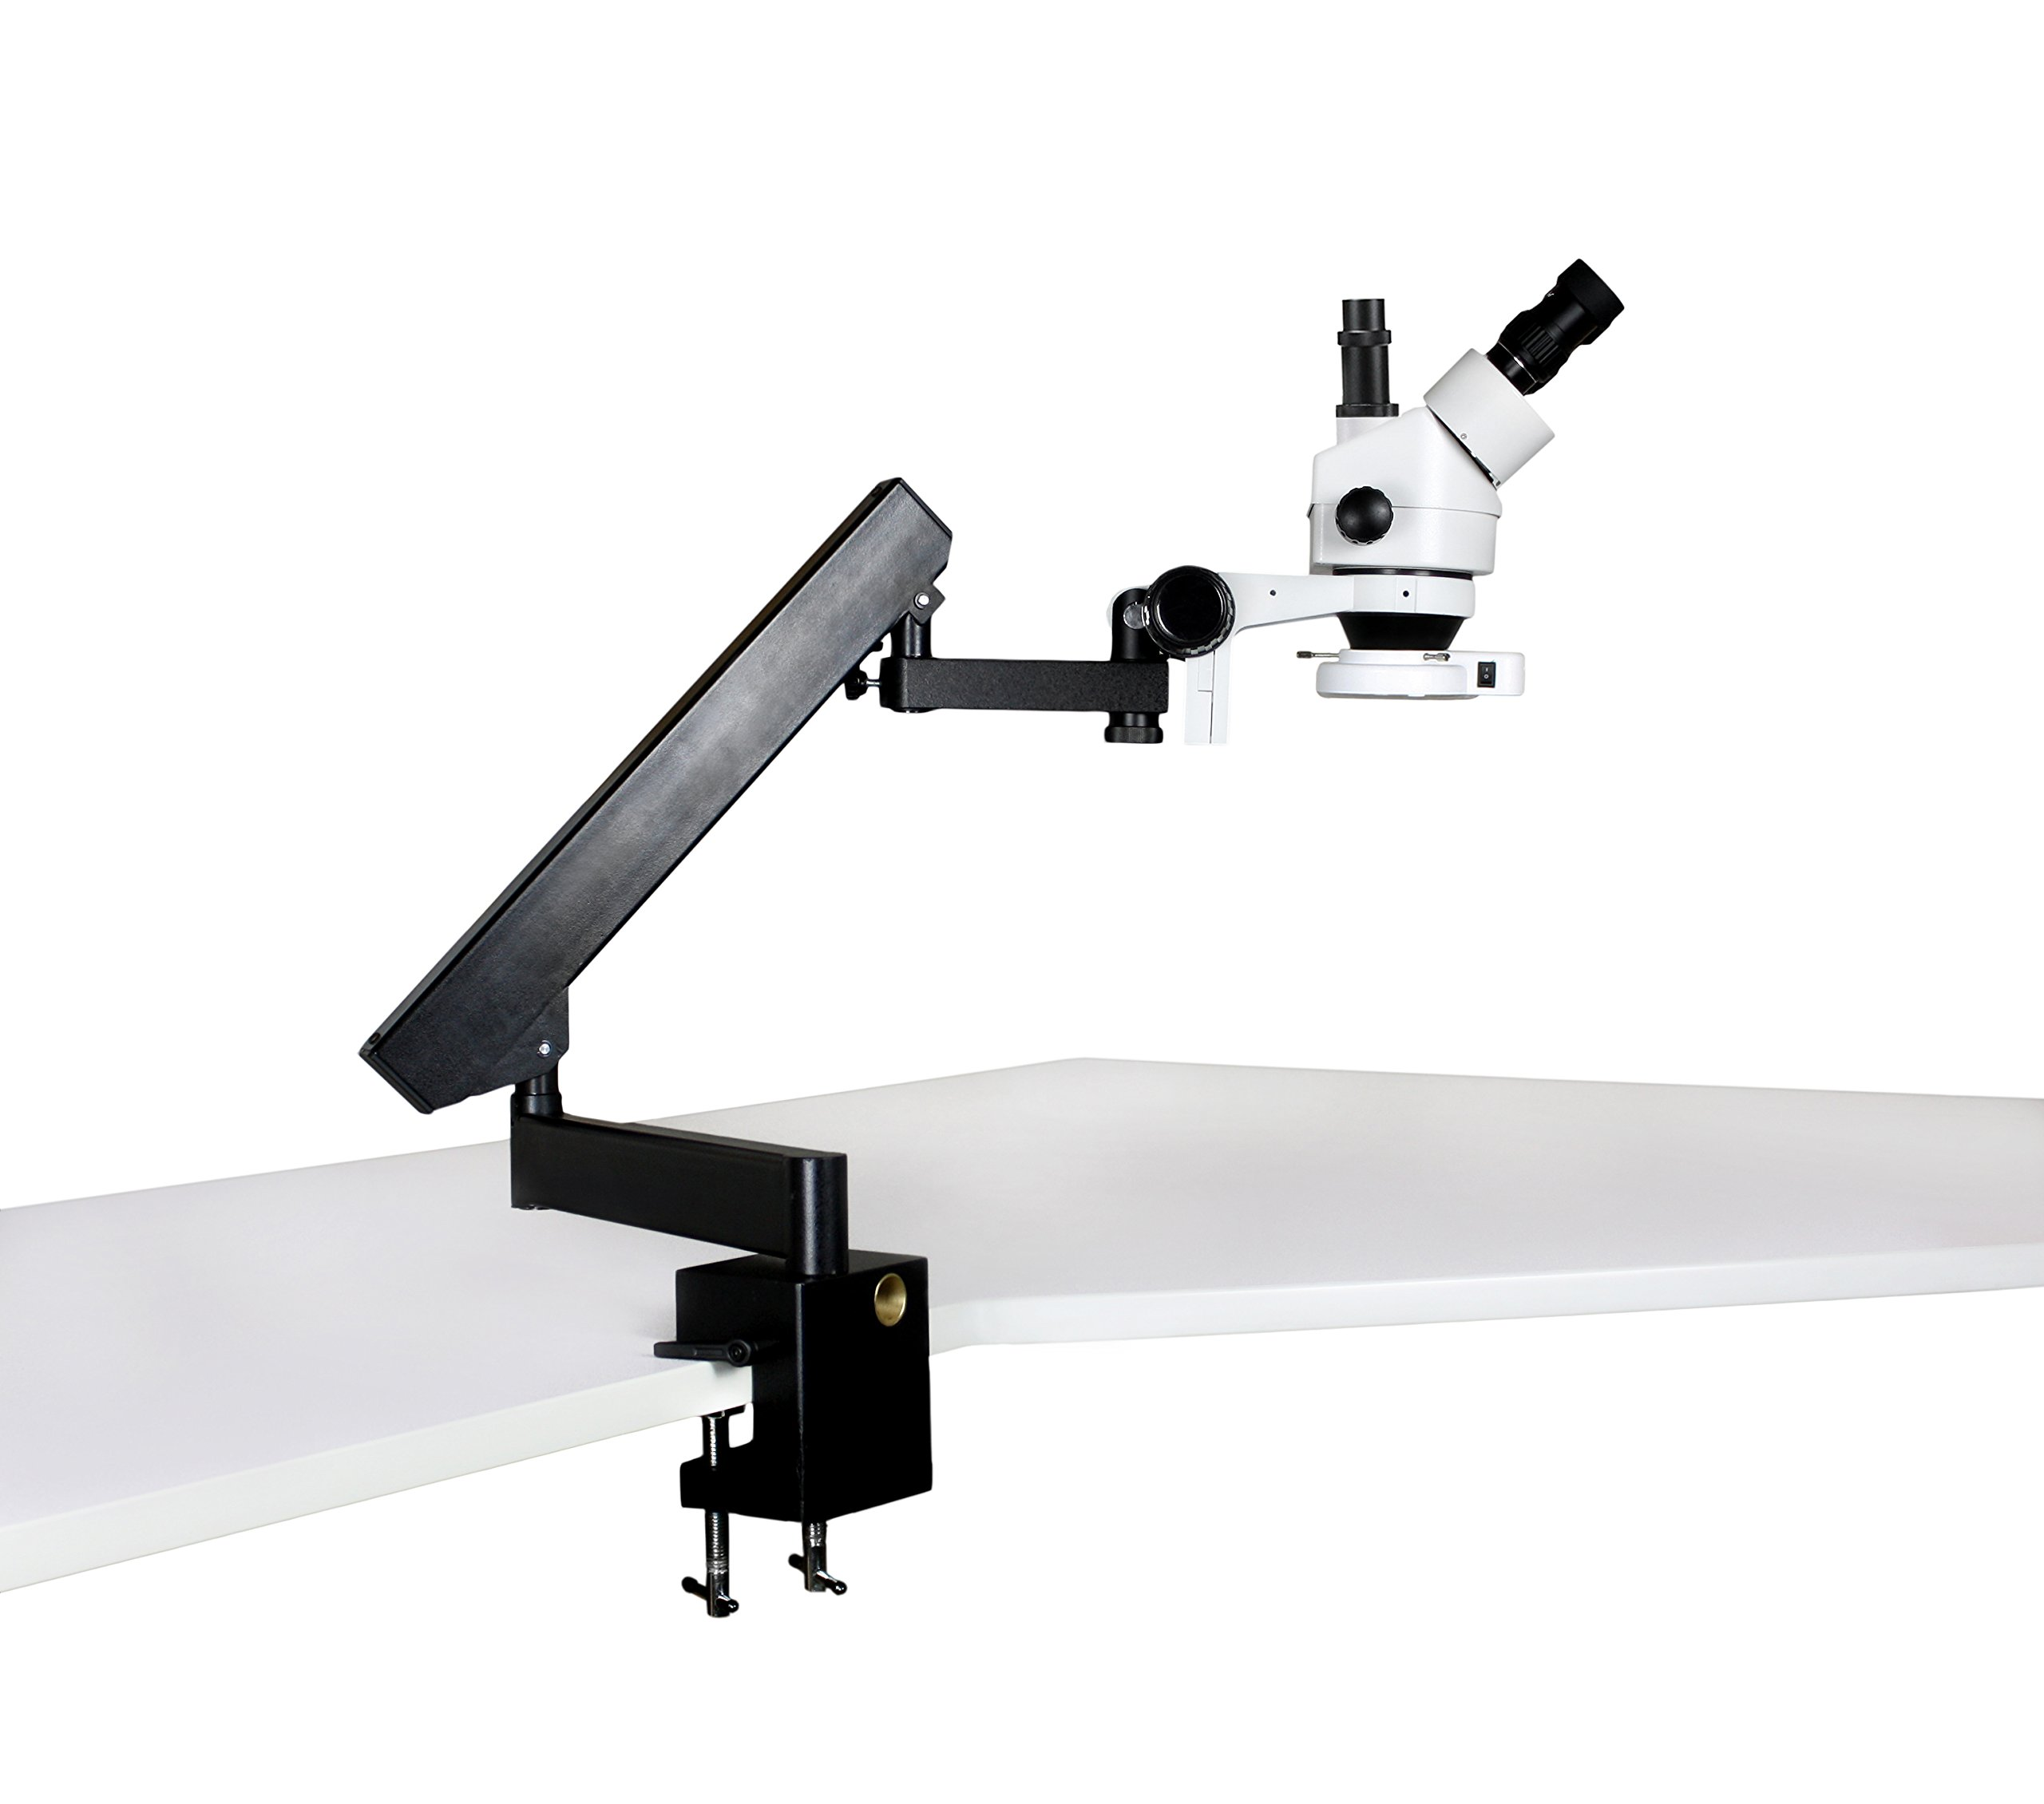 Vision Scientific VS-7F-IFR07 Simul-Focal Trinocular Zoom Stereo Microscope, 10x Widefield Eyepiece, 0.7X-4.5X Zoom Range, 7X-45x Magnification Range, Articulating Arm Clamp Stand, 144-LED Ring Light by Vision Scientific